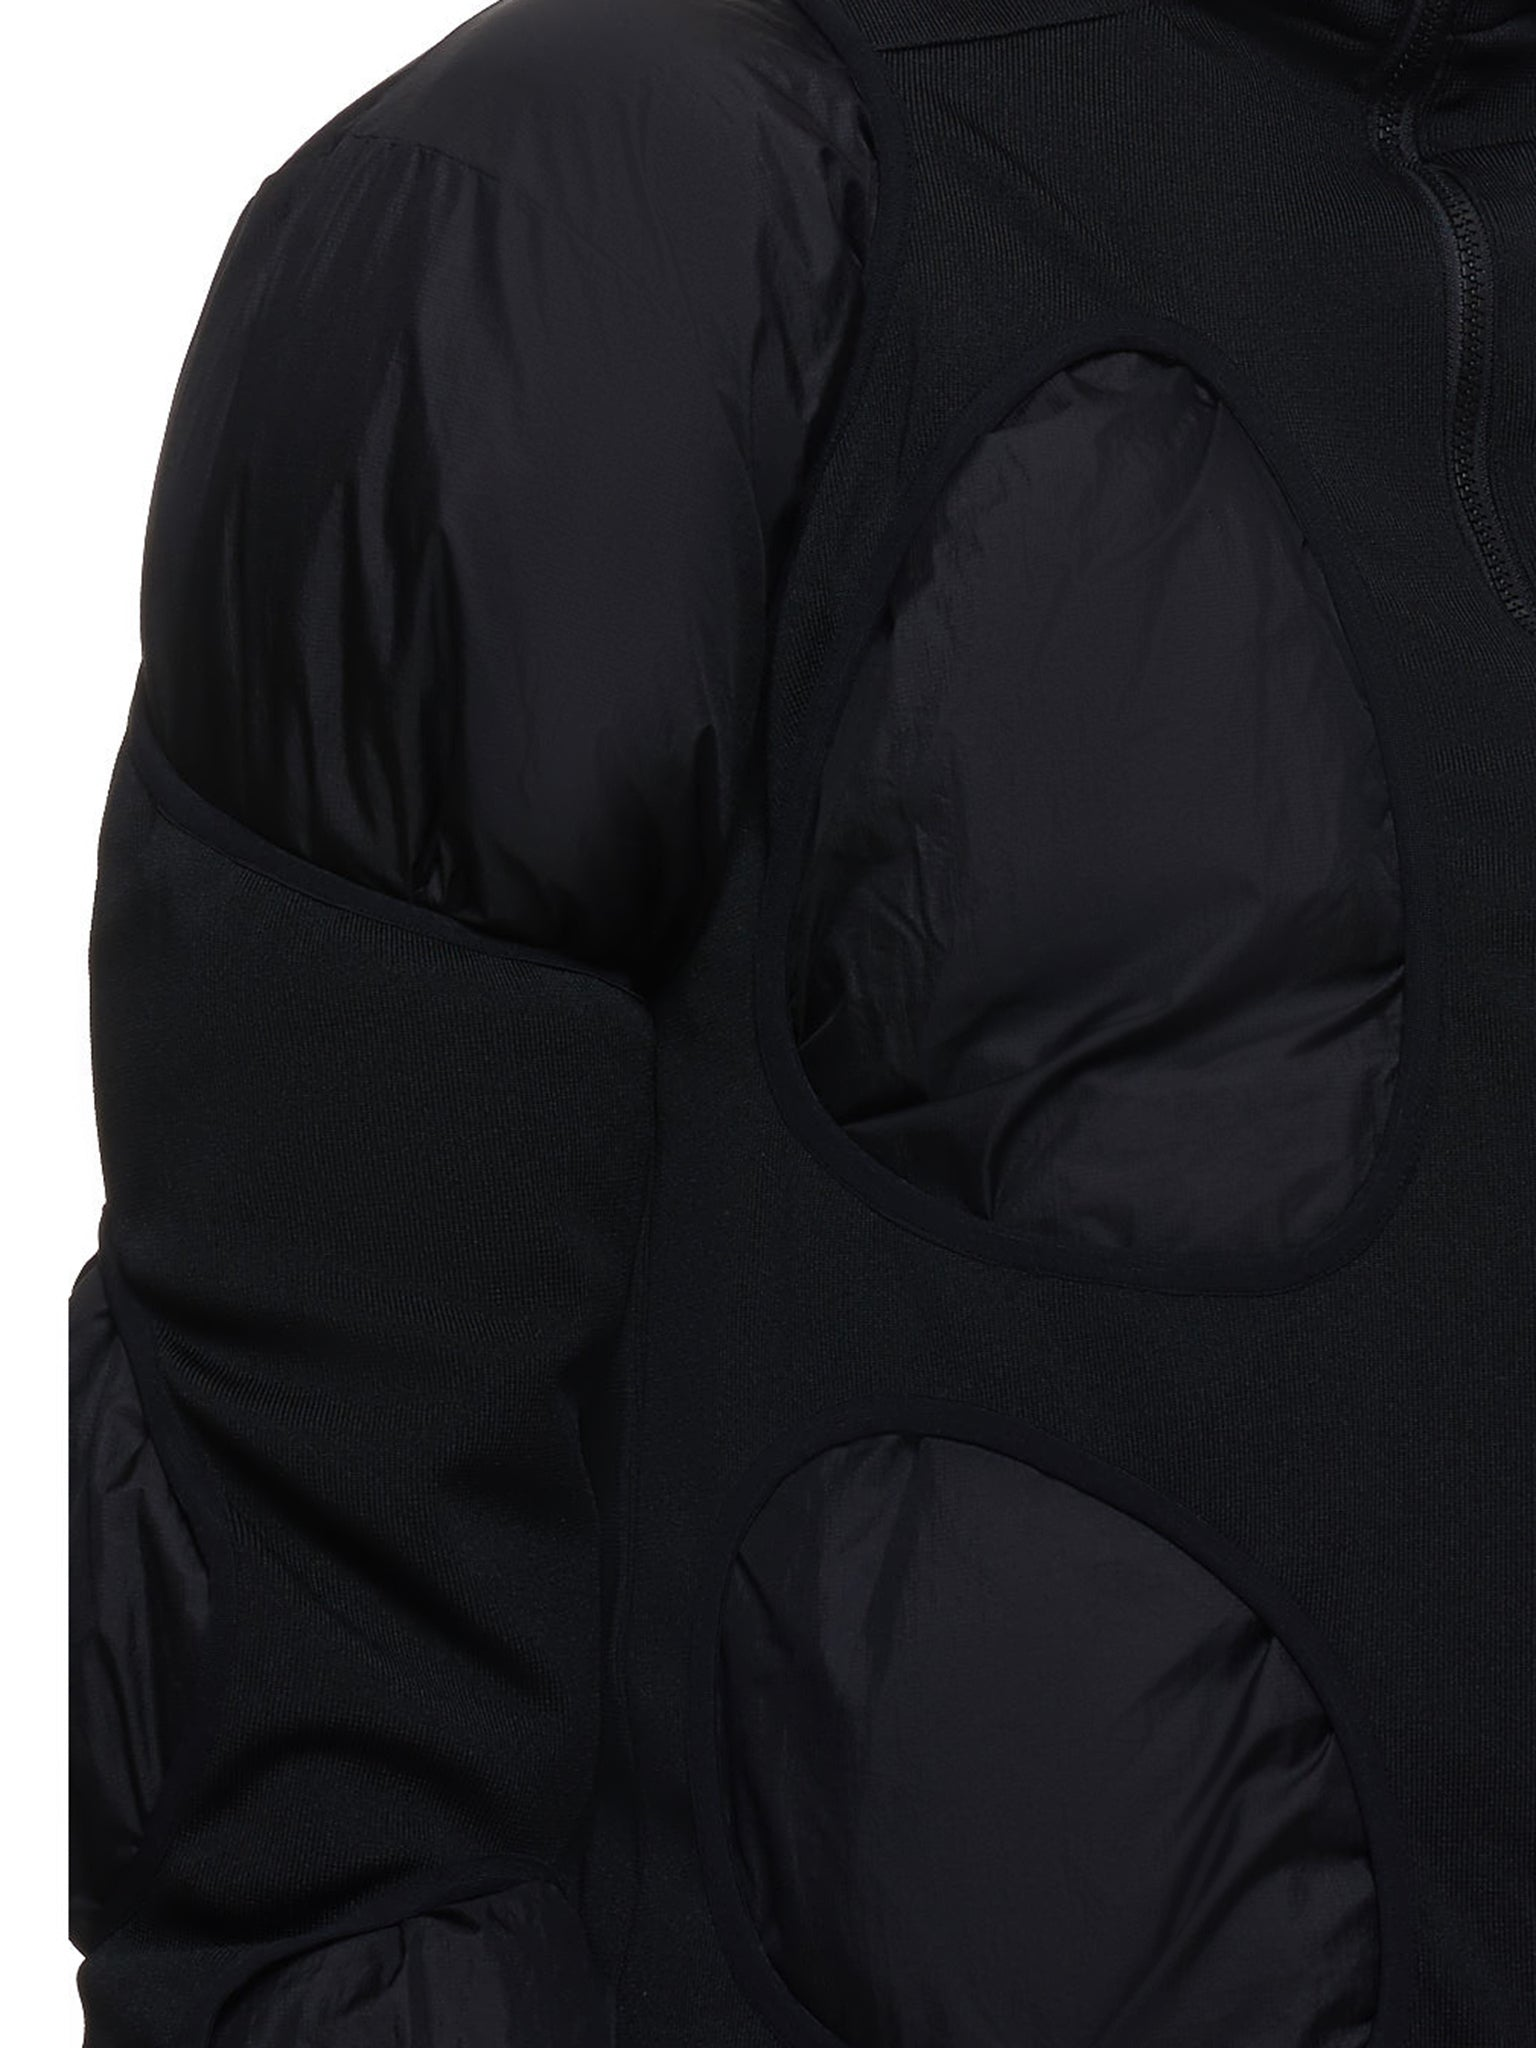 Post Archive Faction (PAF) Jacket | H.Lorenzo Detail 2